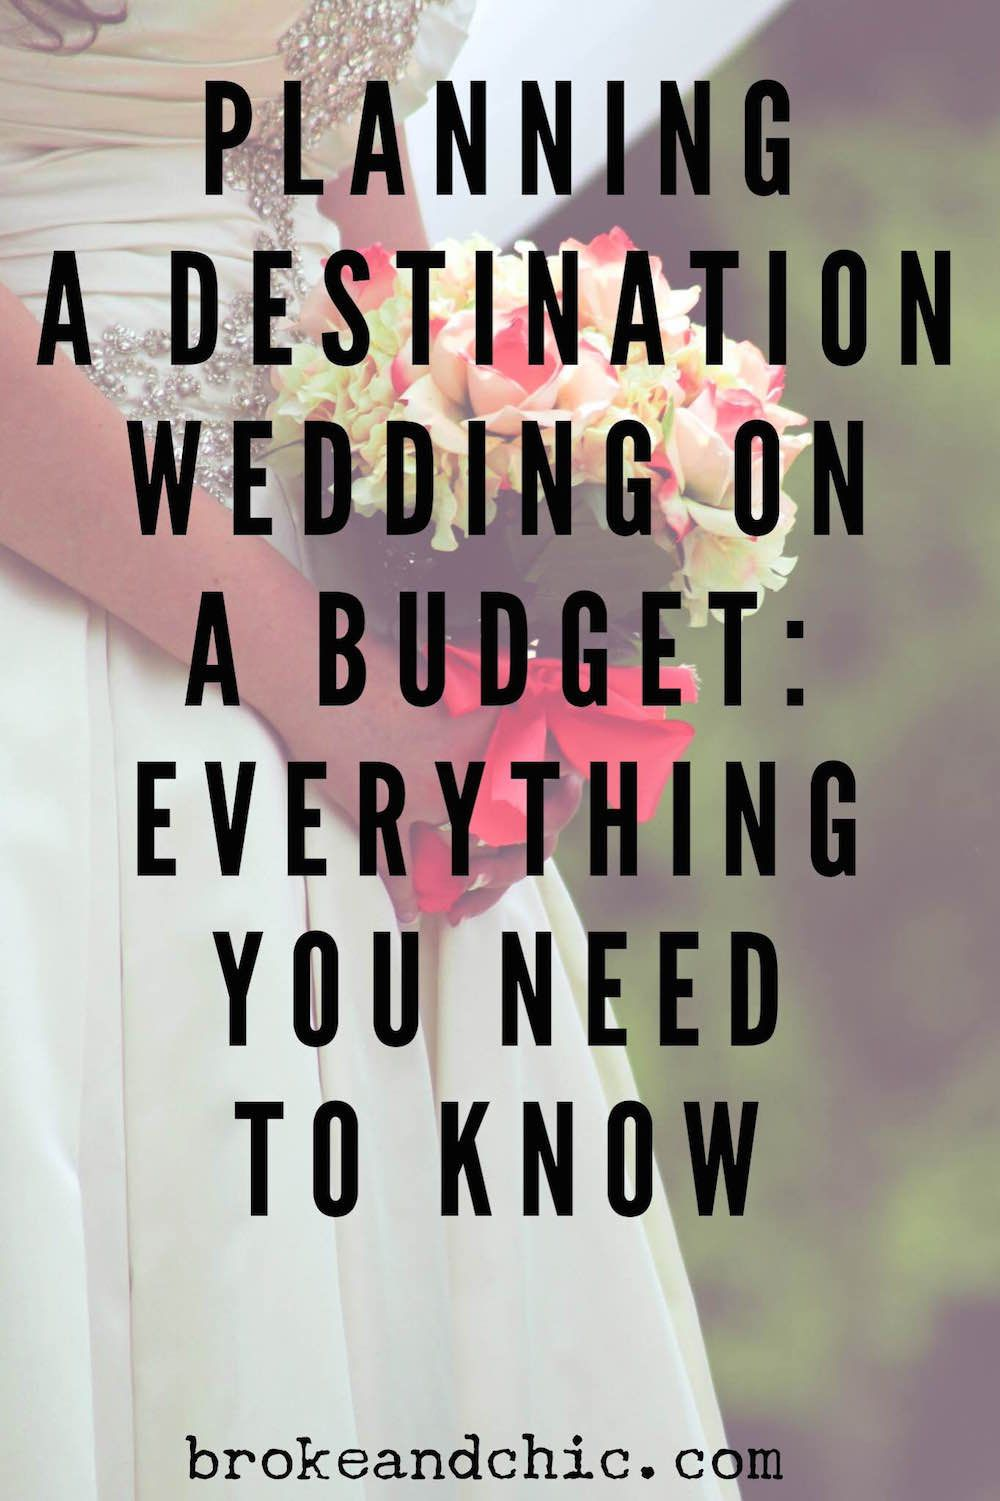 How To Plan A Destination Wedding On Budget Www Brokeandchic